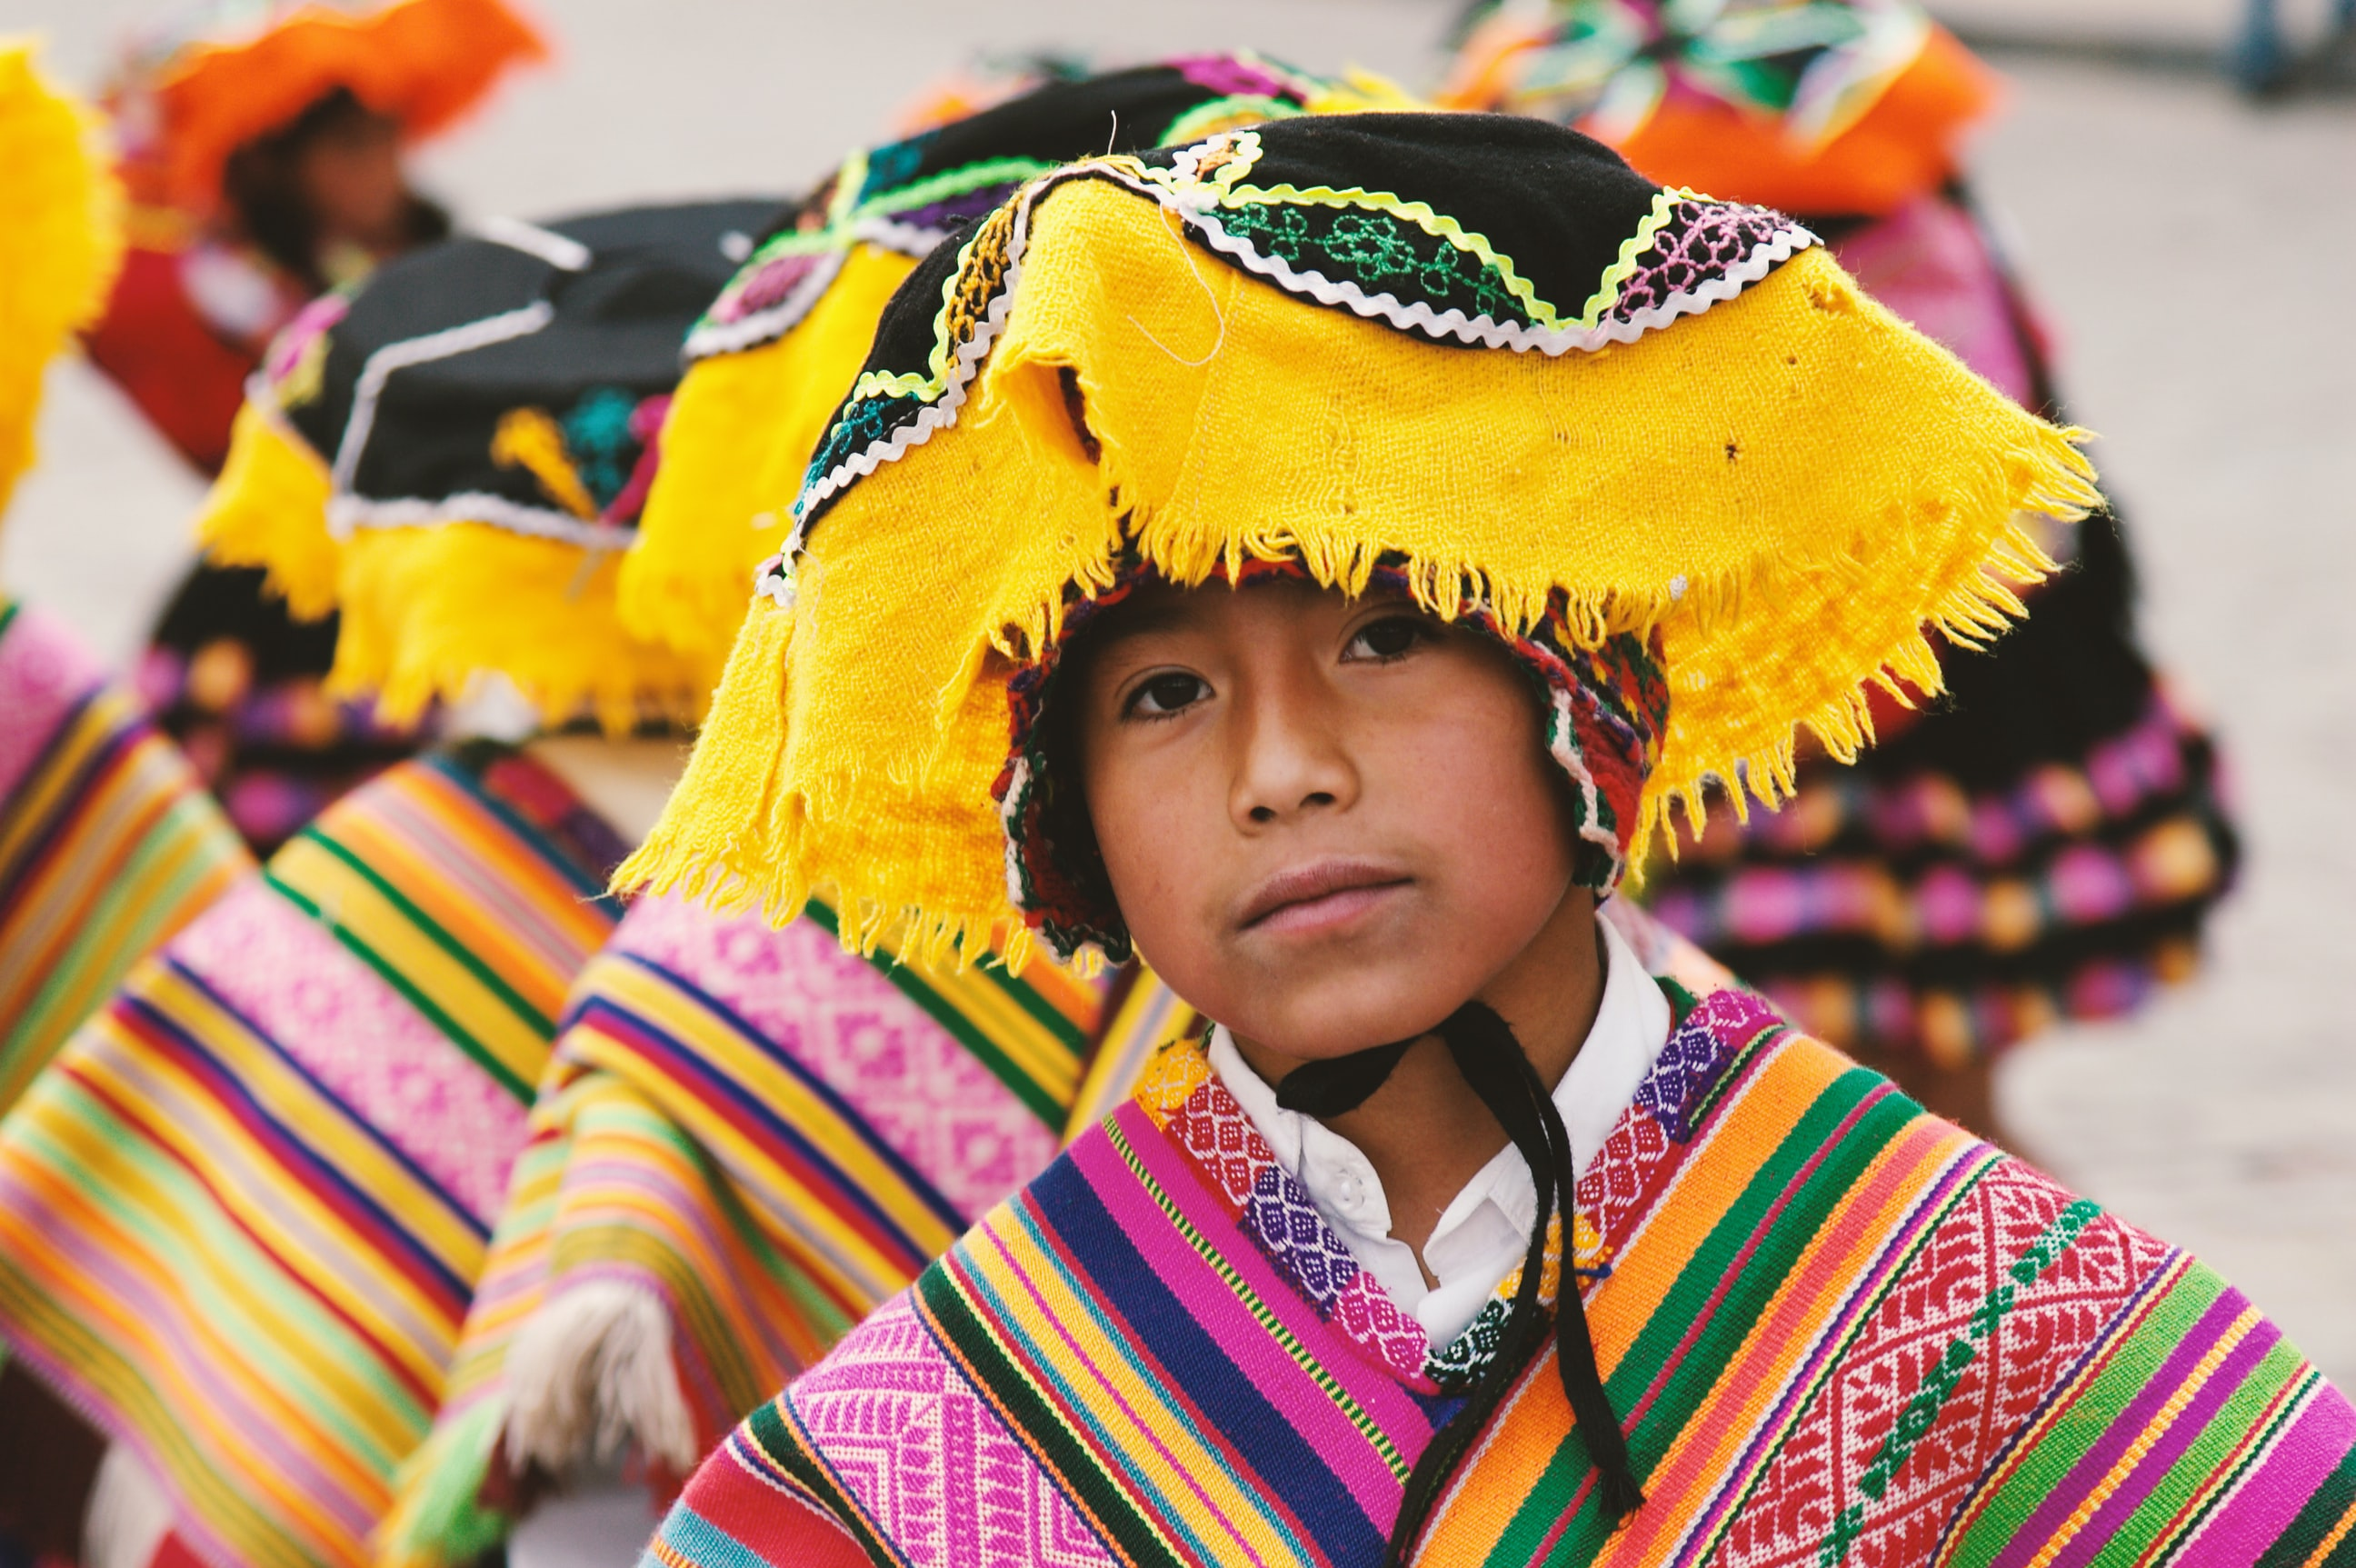 boy in traditional costume in shallow focus photography